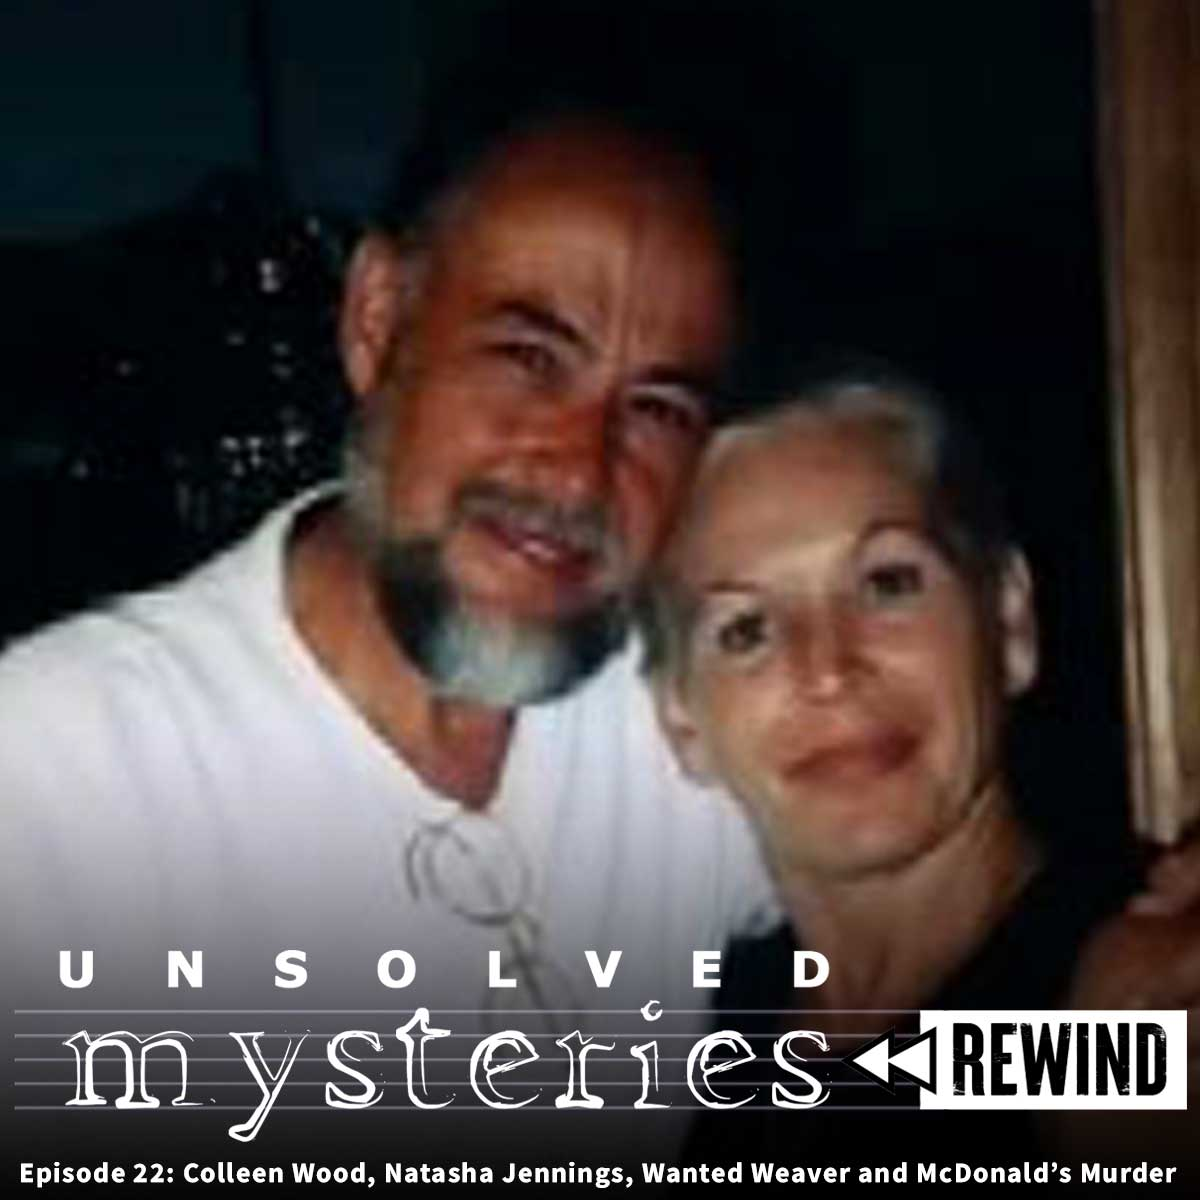 Unsolved Mysteries Rewind: EP22: Colleen Wood, Natasha Jennings, Wanted Weaver and McDonald's Murder